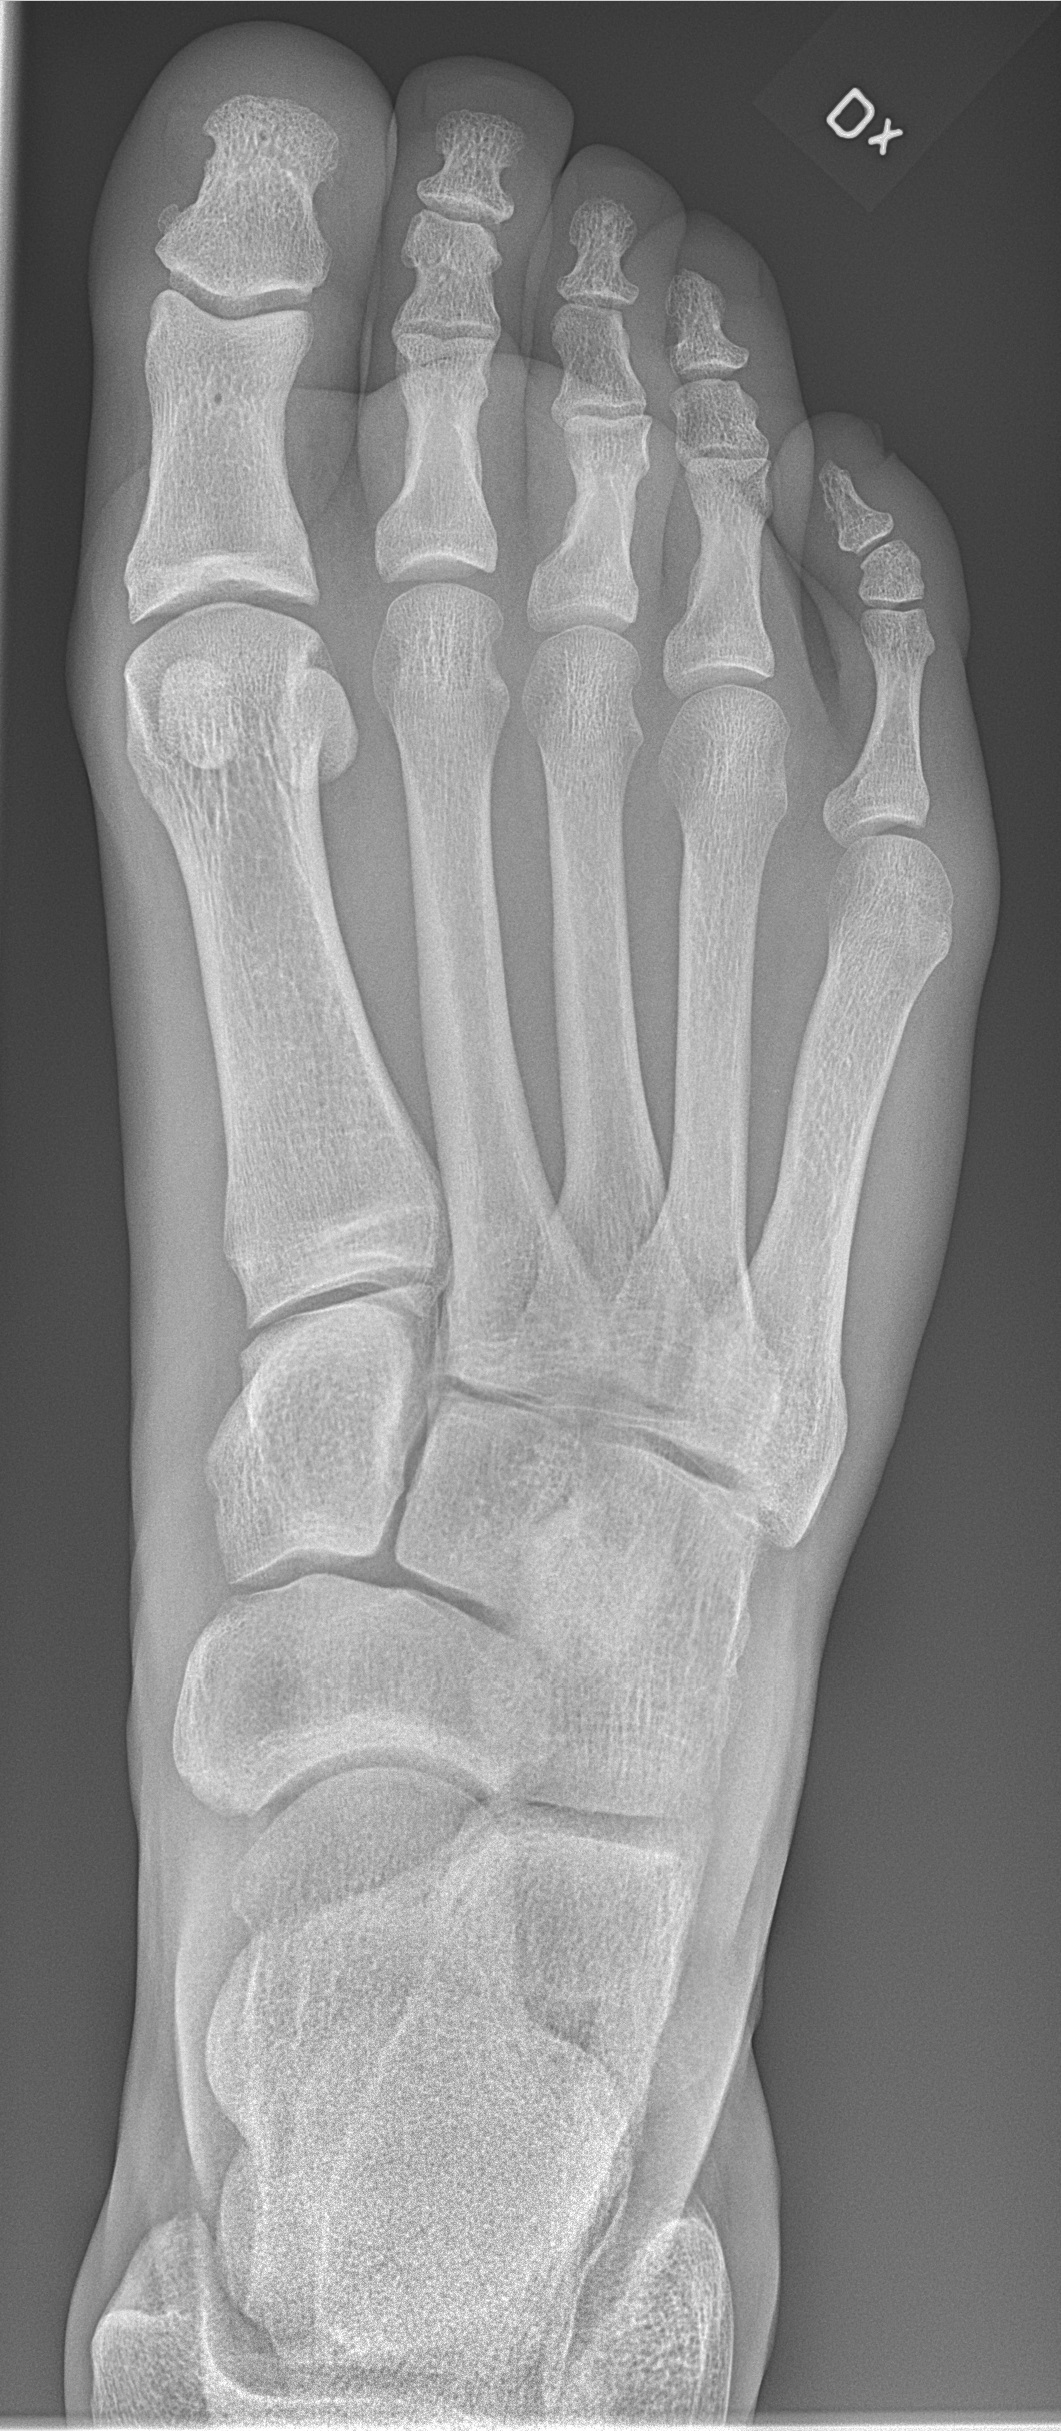 File:X-ray of normal right foot by dorsoplantar projection.jpg ...